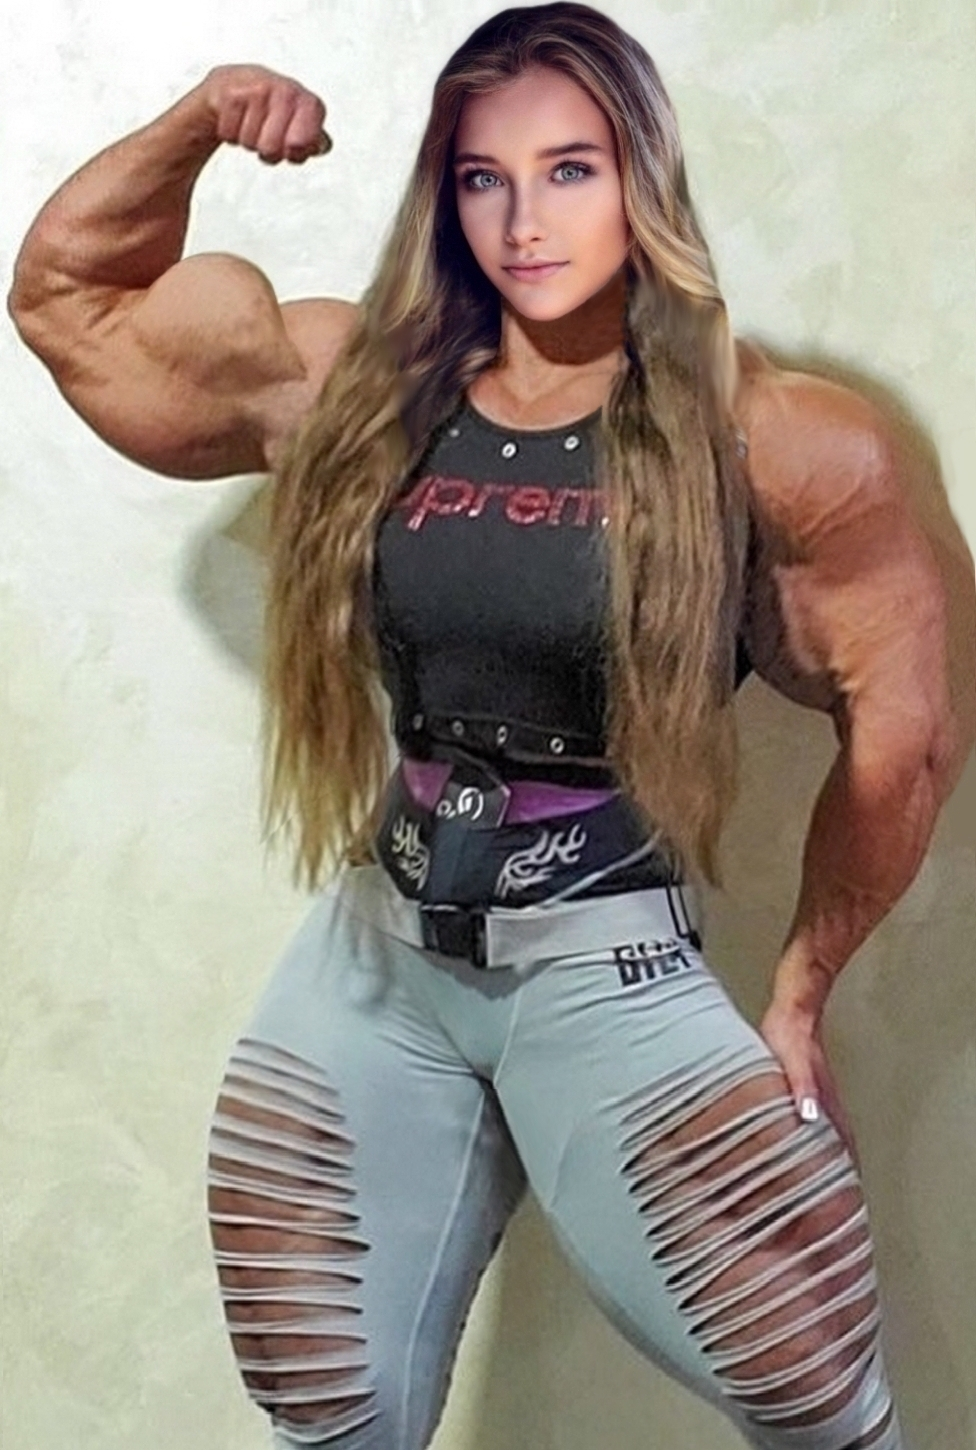 Girl muscle The 11